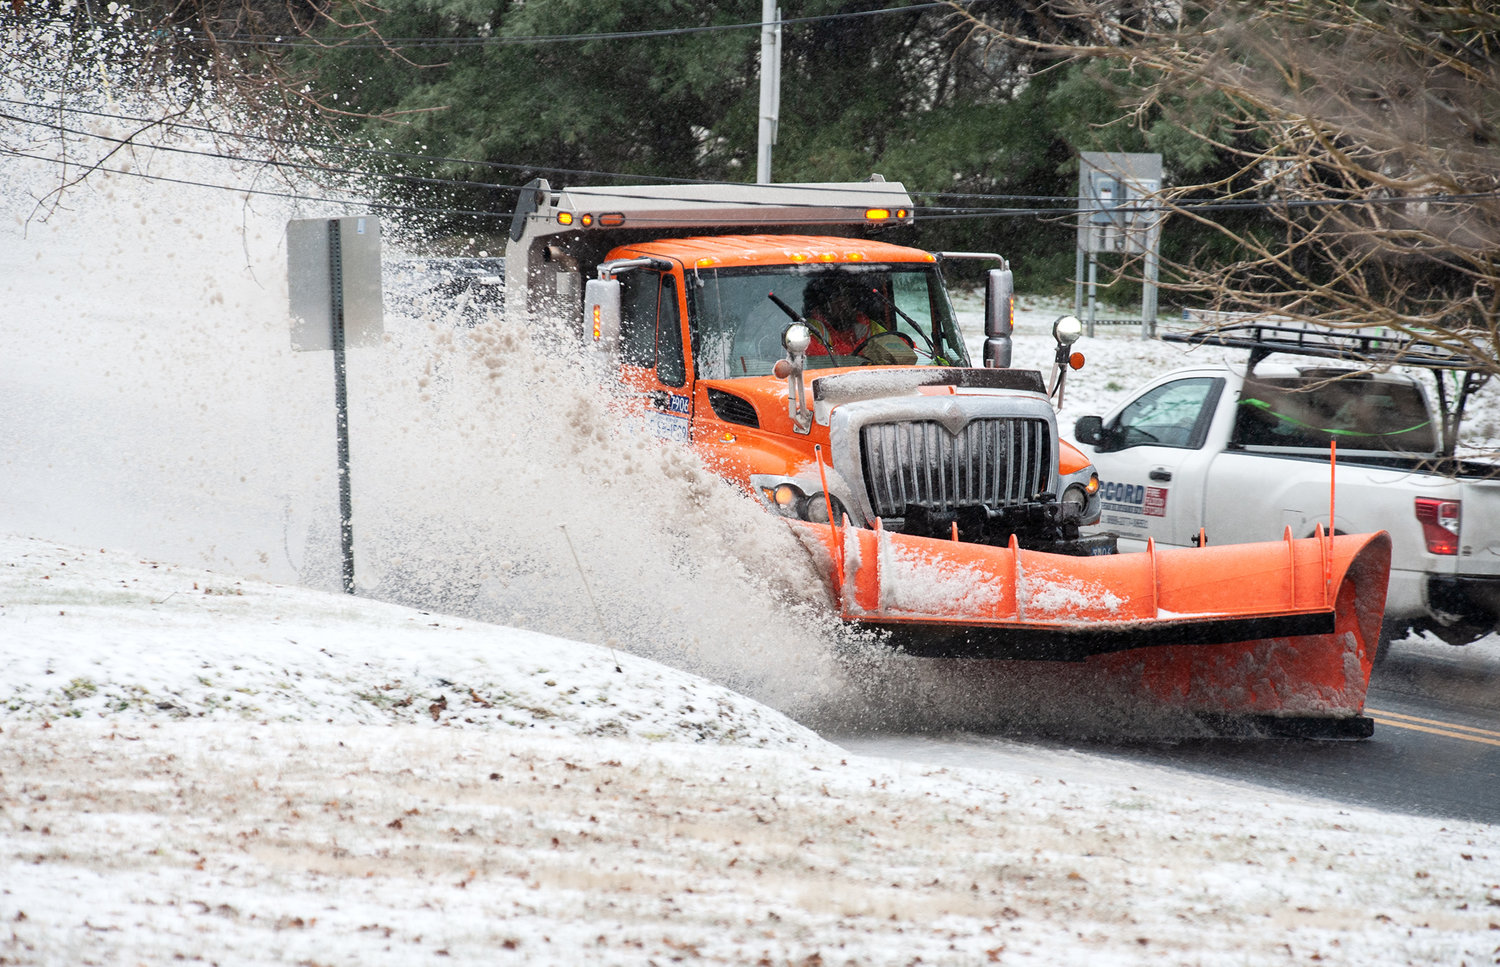 A DelDot snow plow aggressively pushes snow and ice off of Canterbury Road near Felton on Thursday. Sleet and snow is making driving dangerous in Kent County.